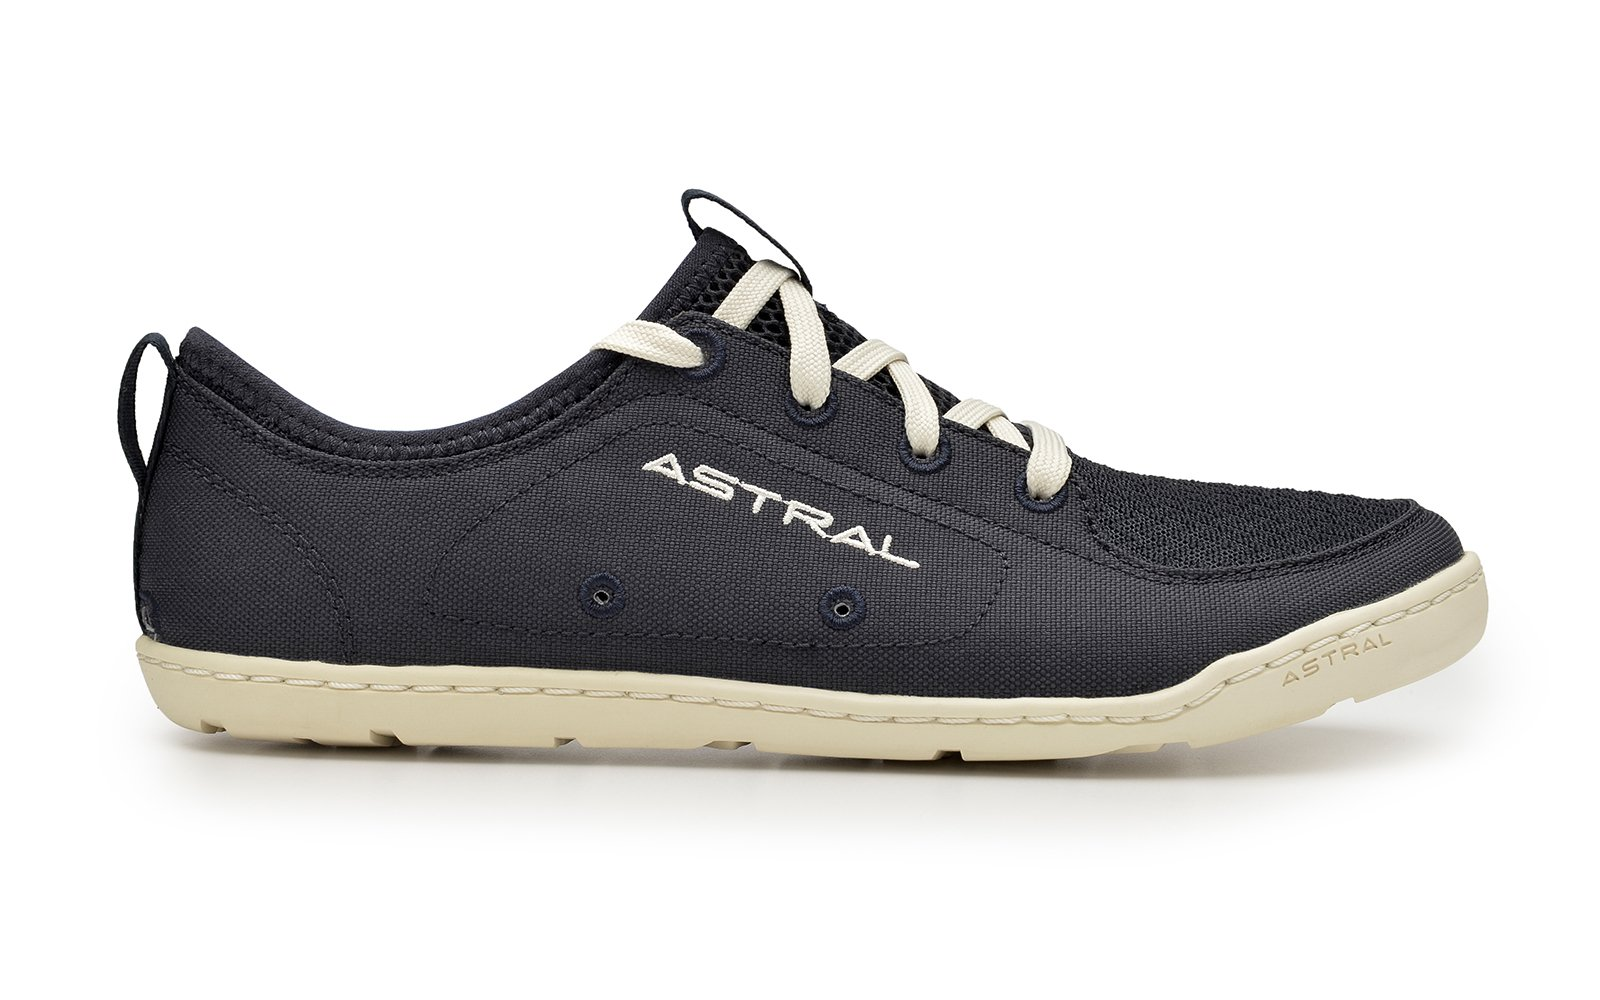 Astral Loyak Women's Water Shoes in Navy/White